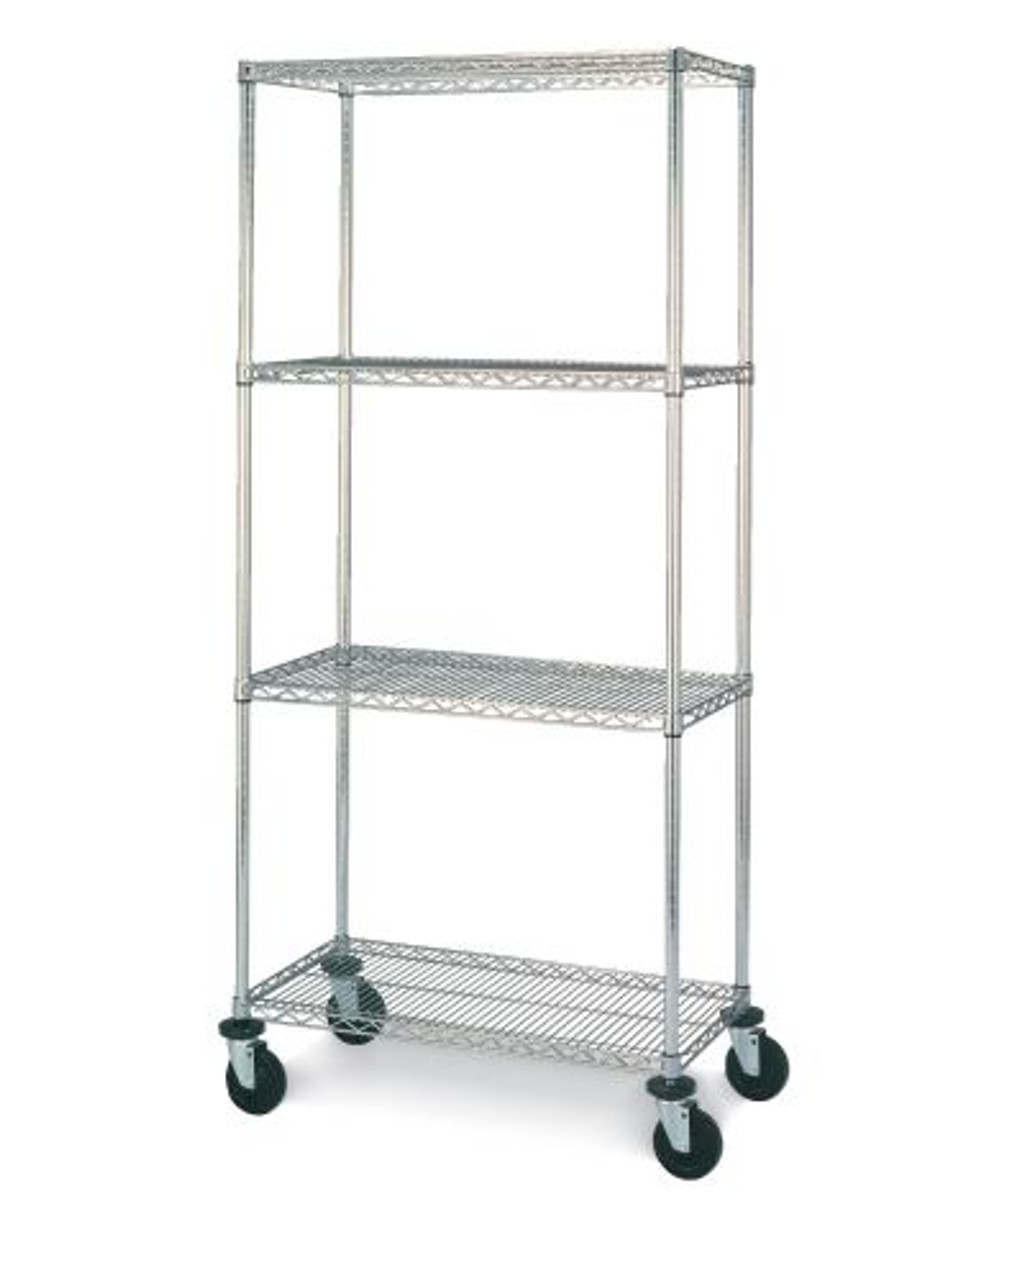 "Olympic 14"" Deep 4 Shelf Mobile Carts - Chrome - 14"" x 24"" x 68"" MJ1424-63UC"